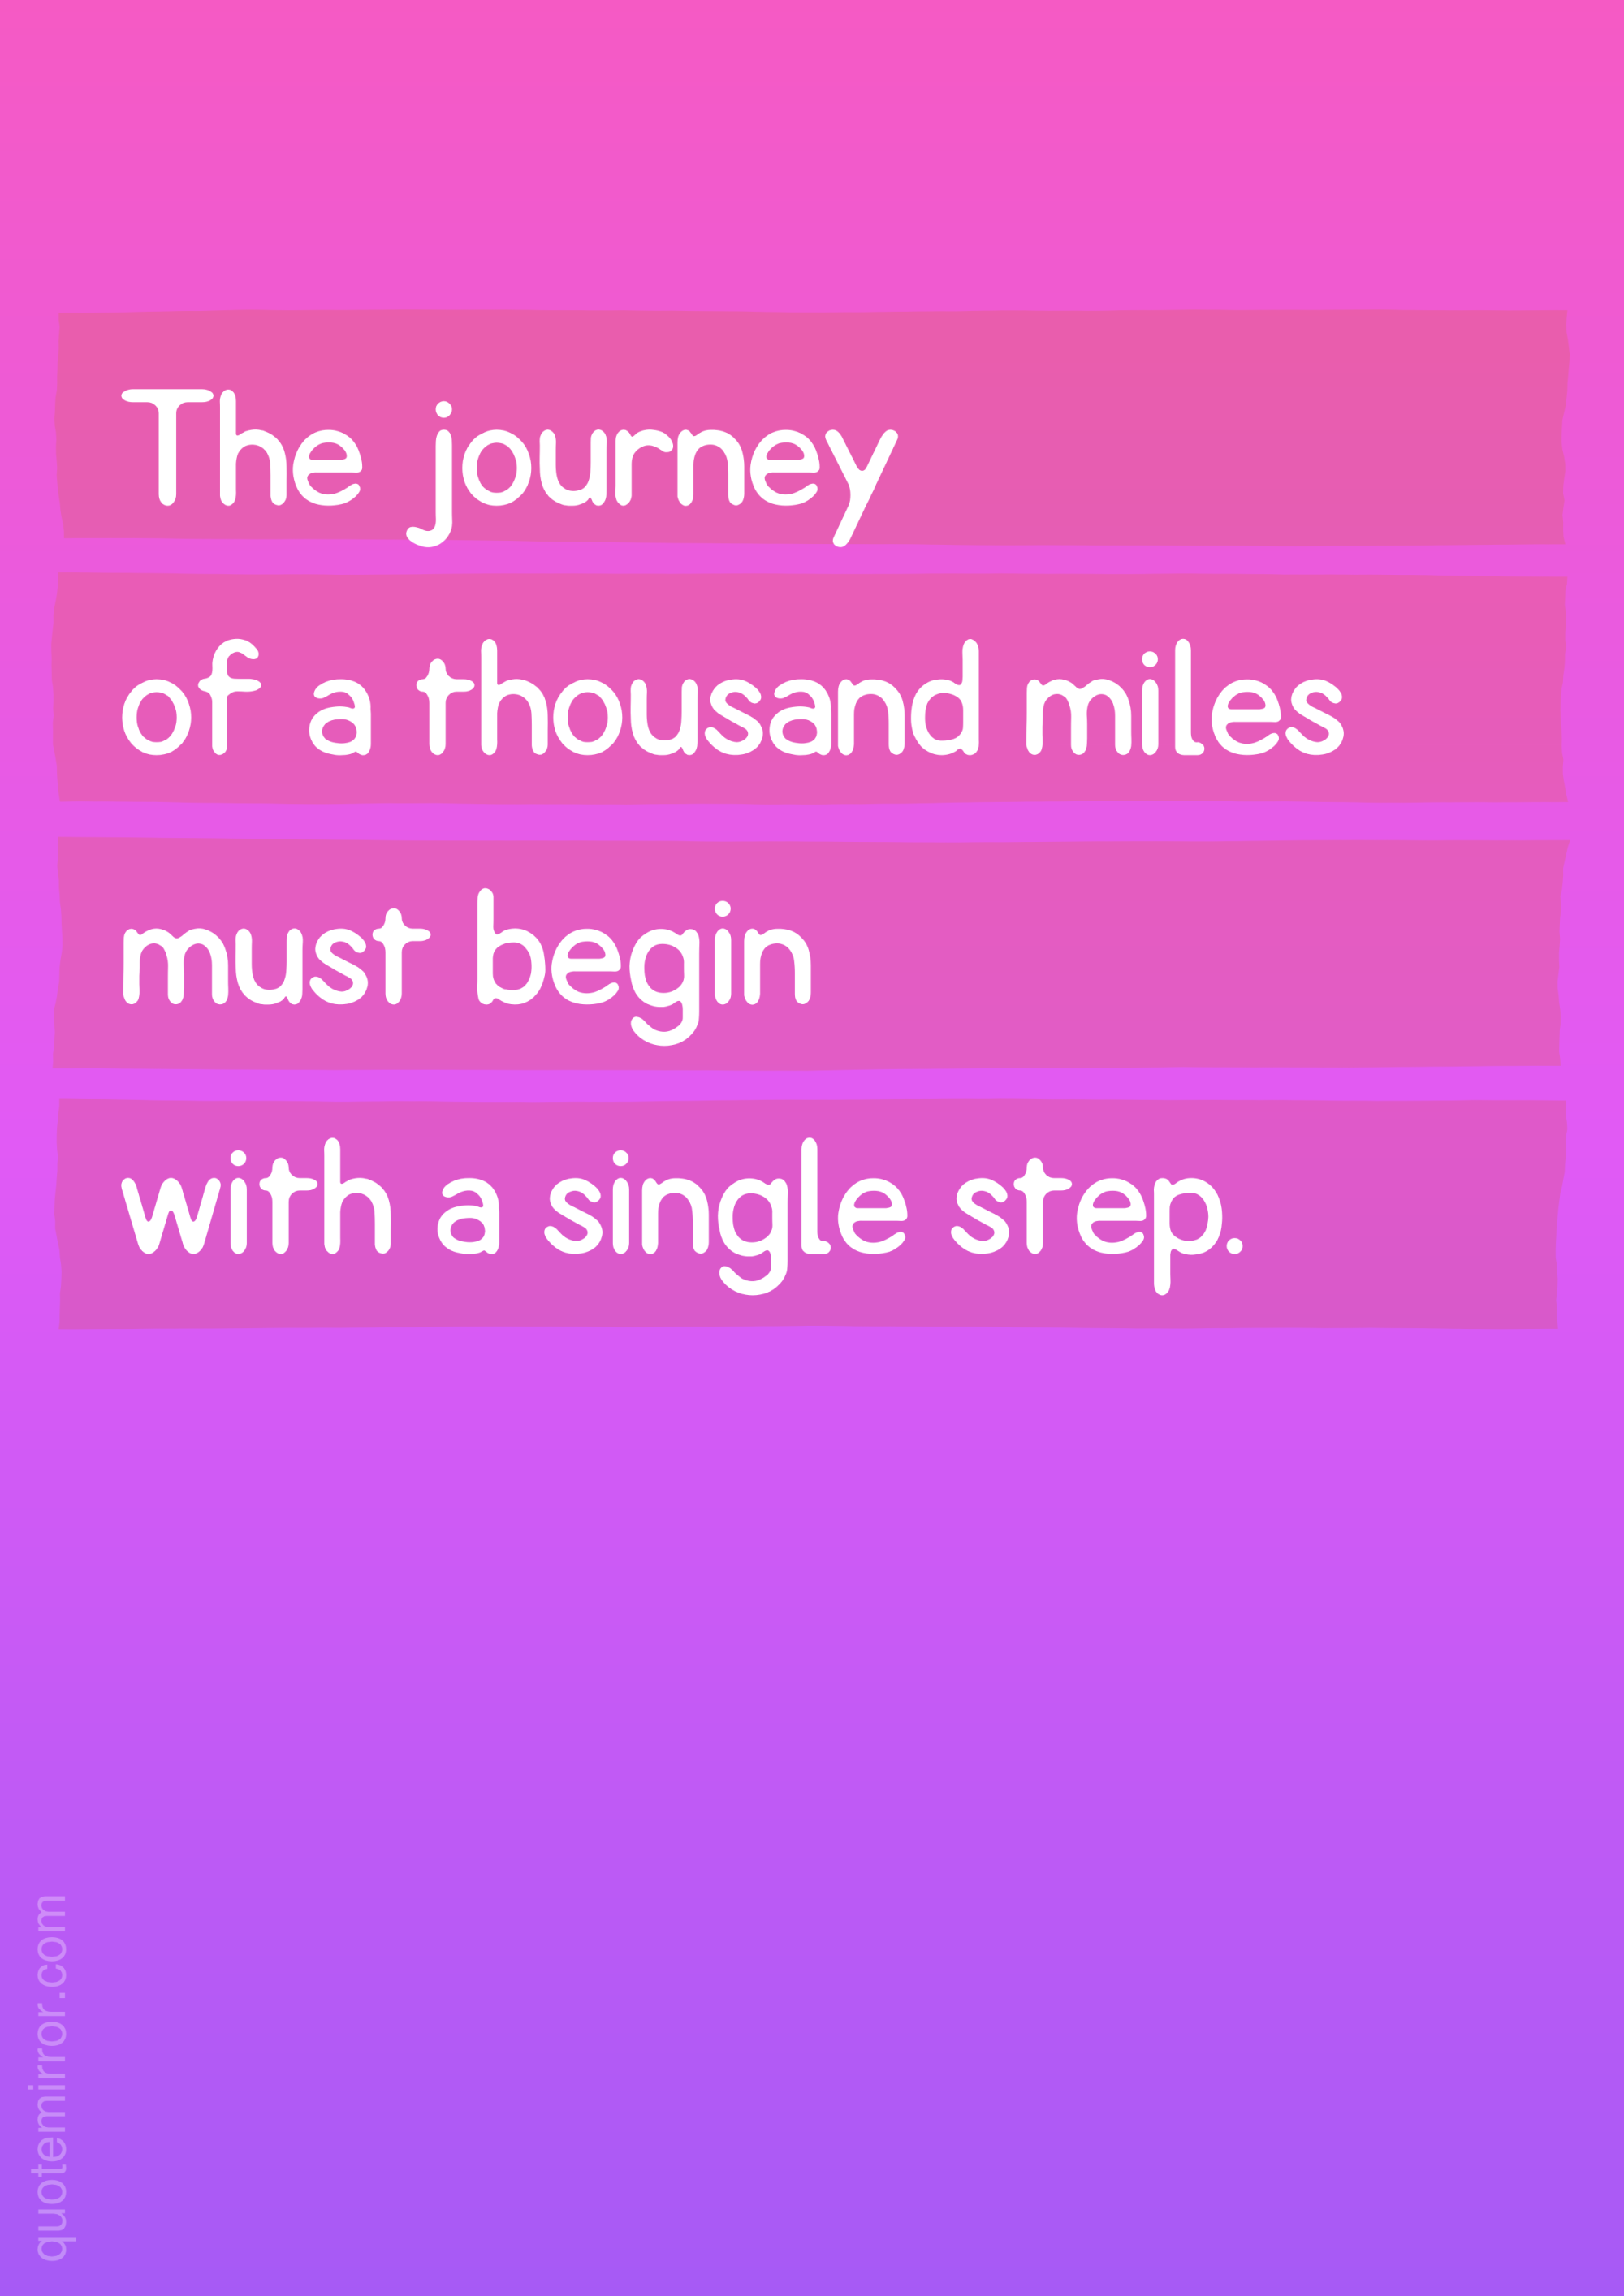 The journey of a thousand miles must begin with a single step.  – #attitude #journey http://quotemirror.com/s/n59nt